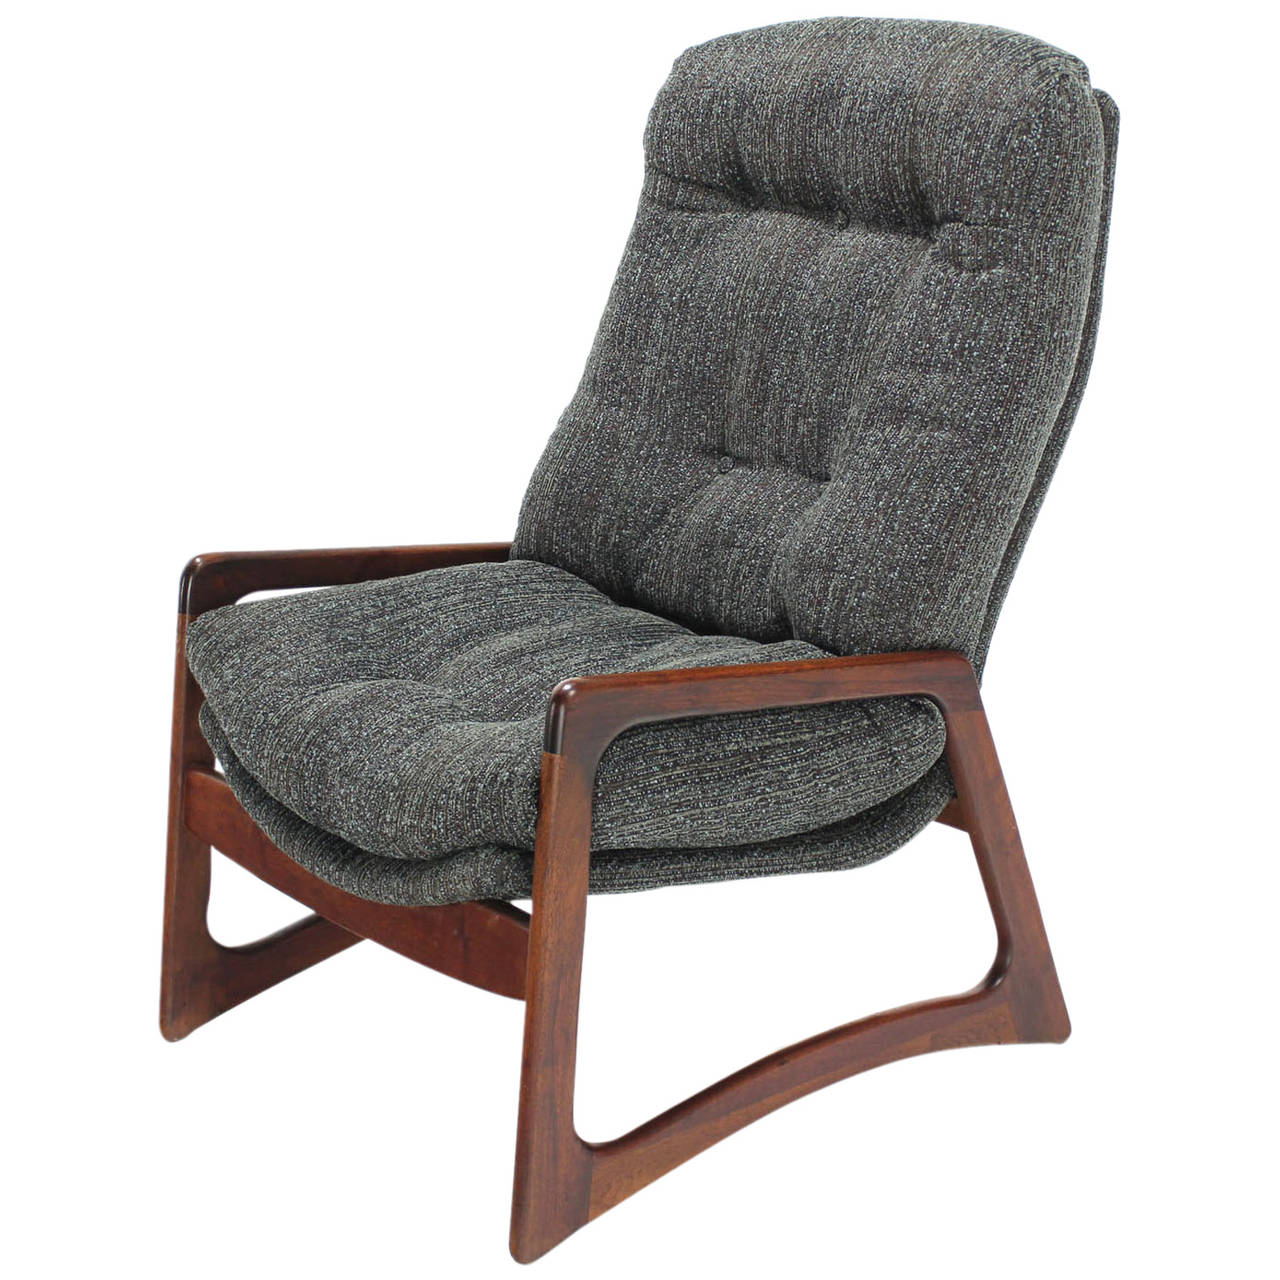 Adrian Pearsall Oiled Walnut Lounge Chair New Upholstery